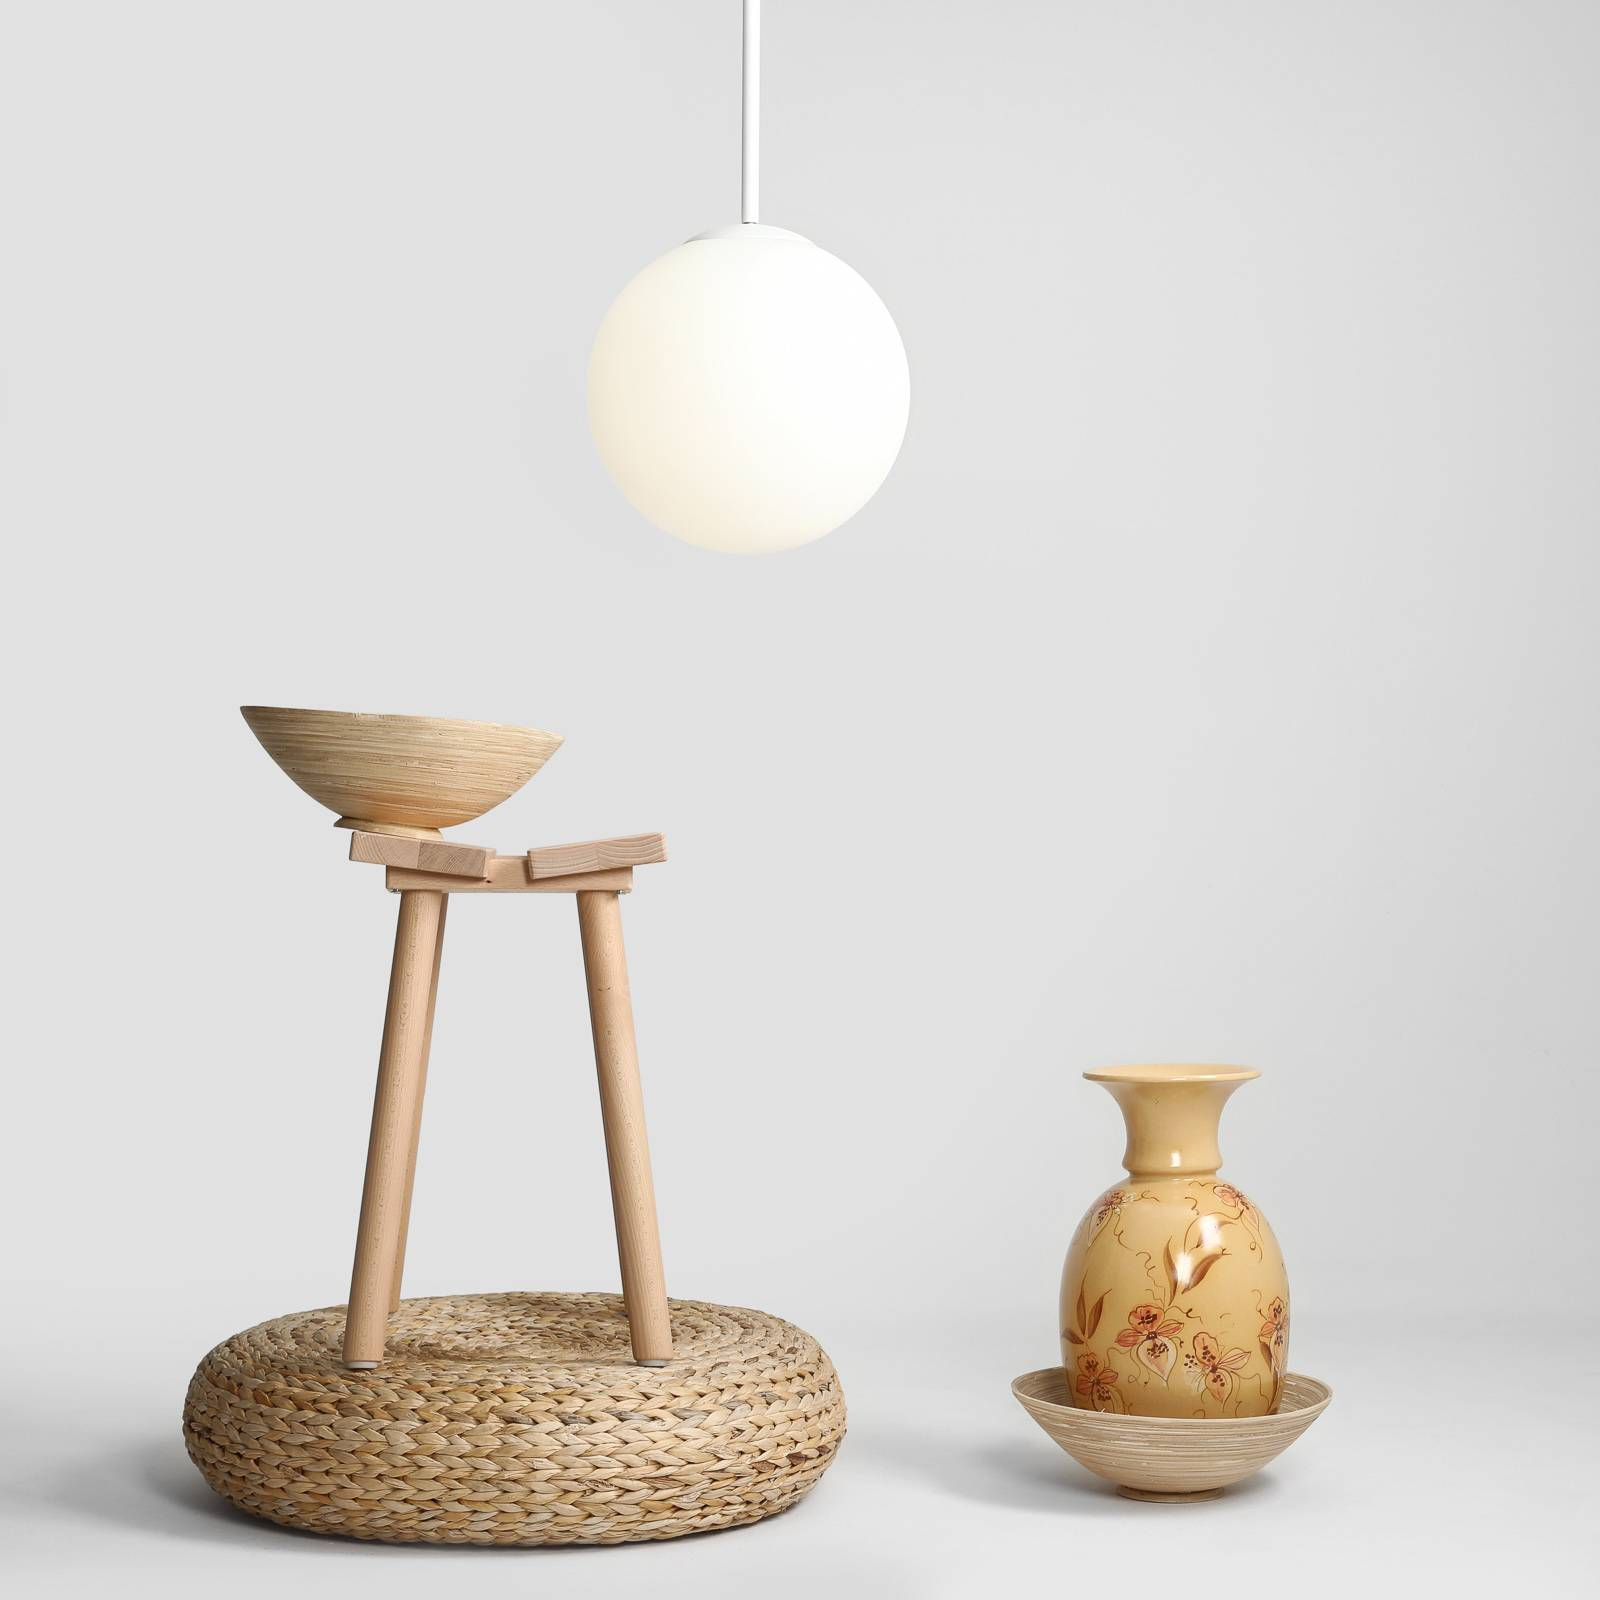 Hanglamp Bosso, 1-lamp, wit